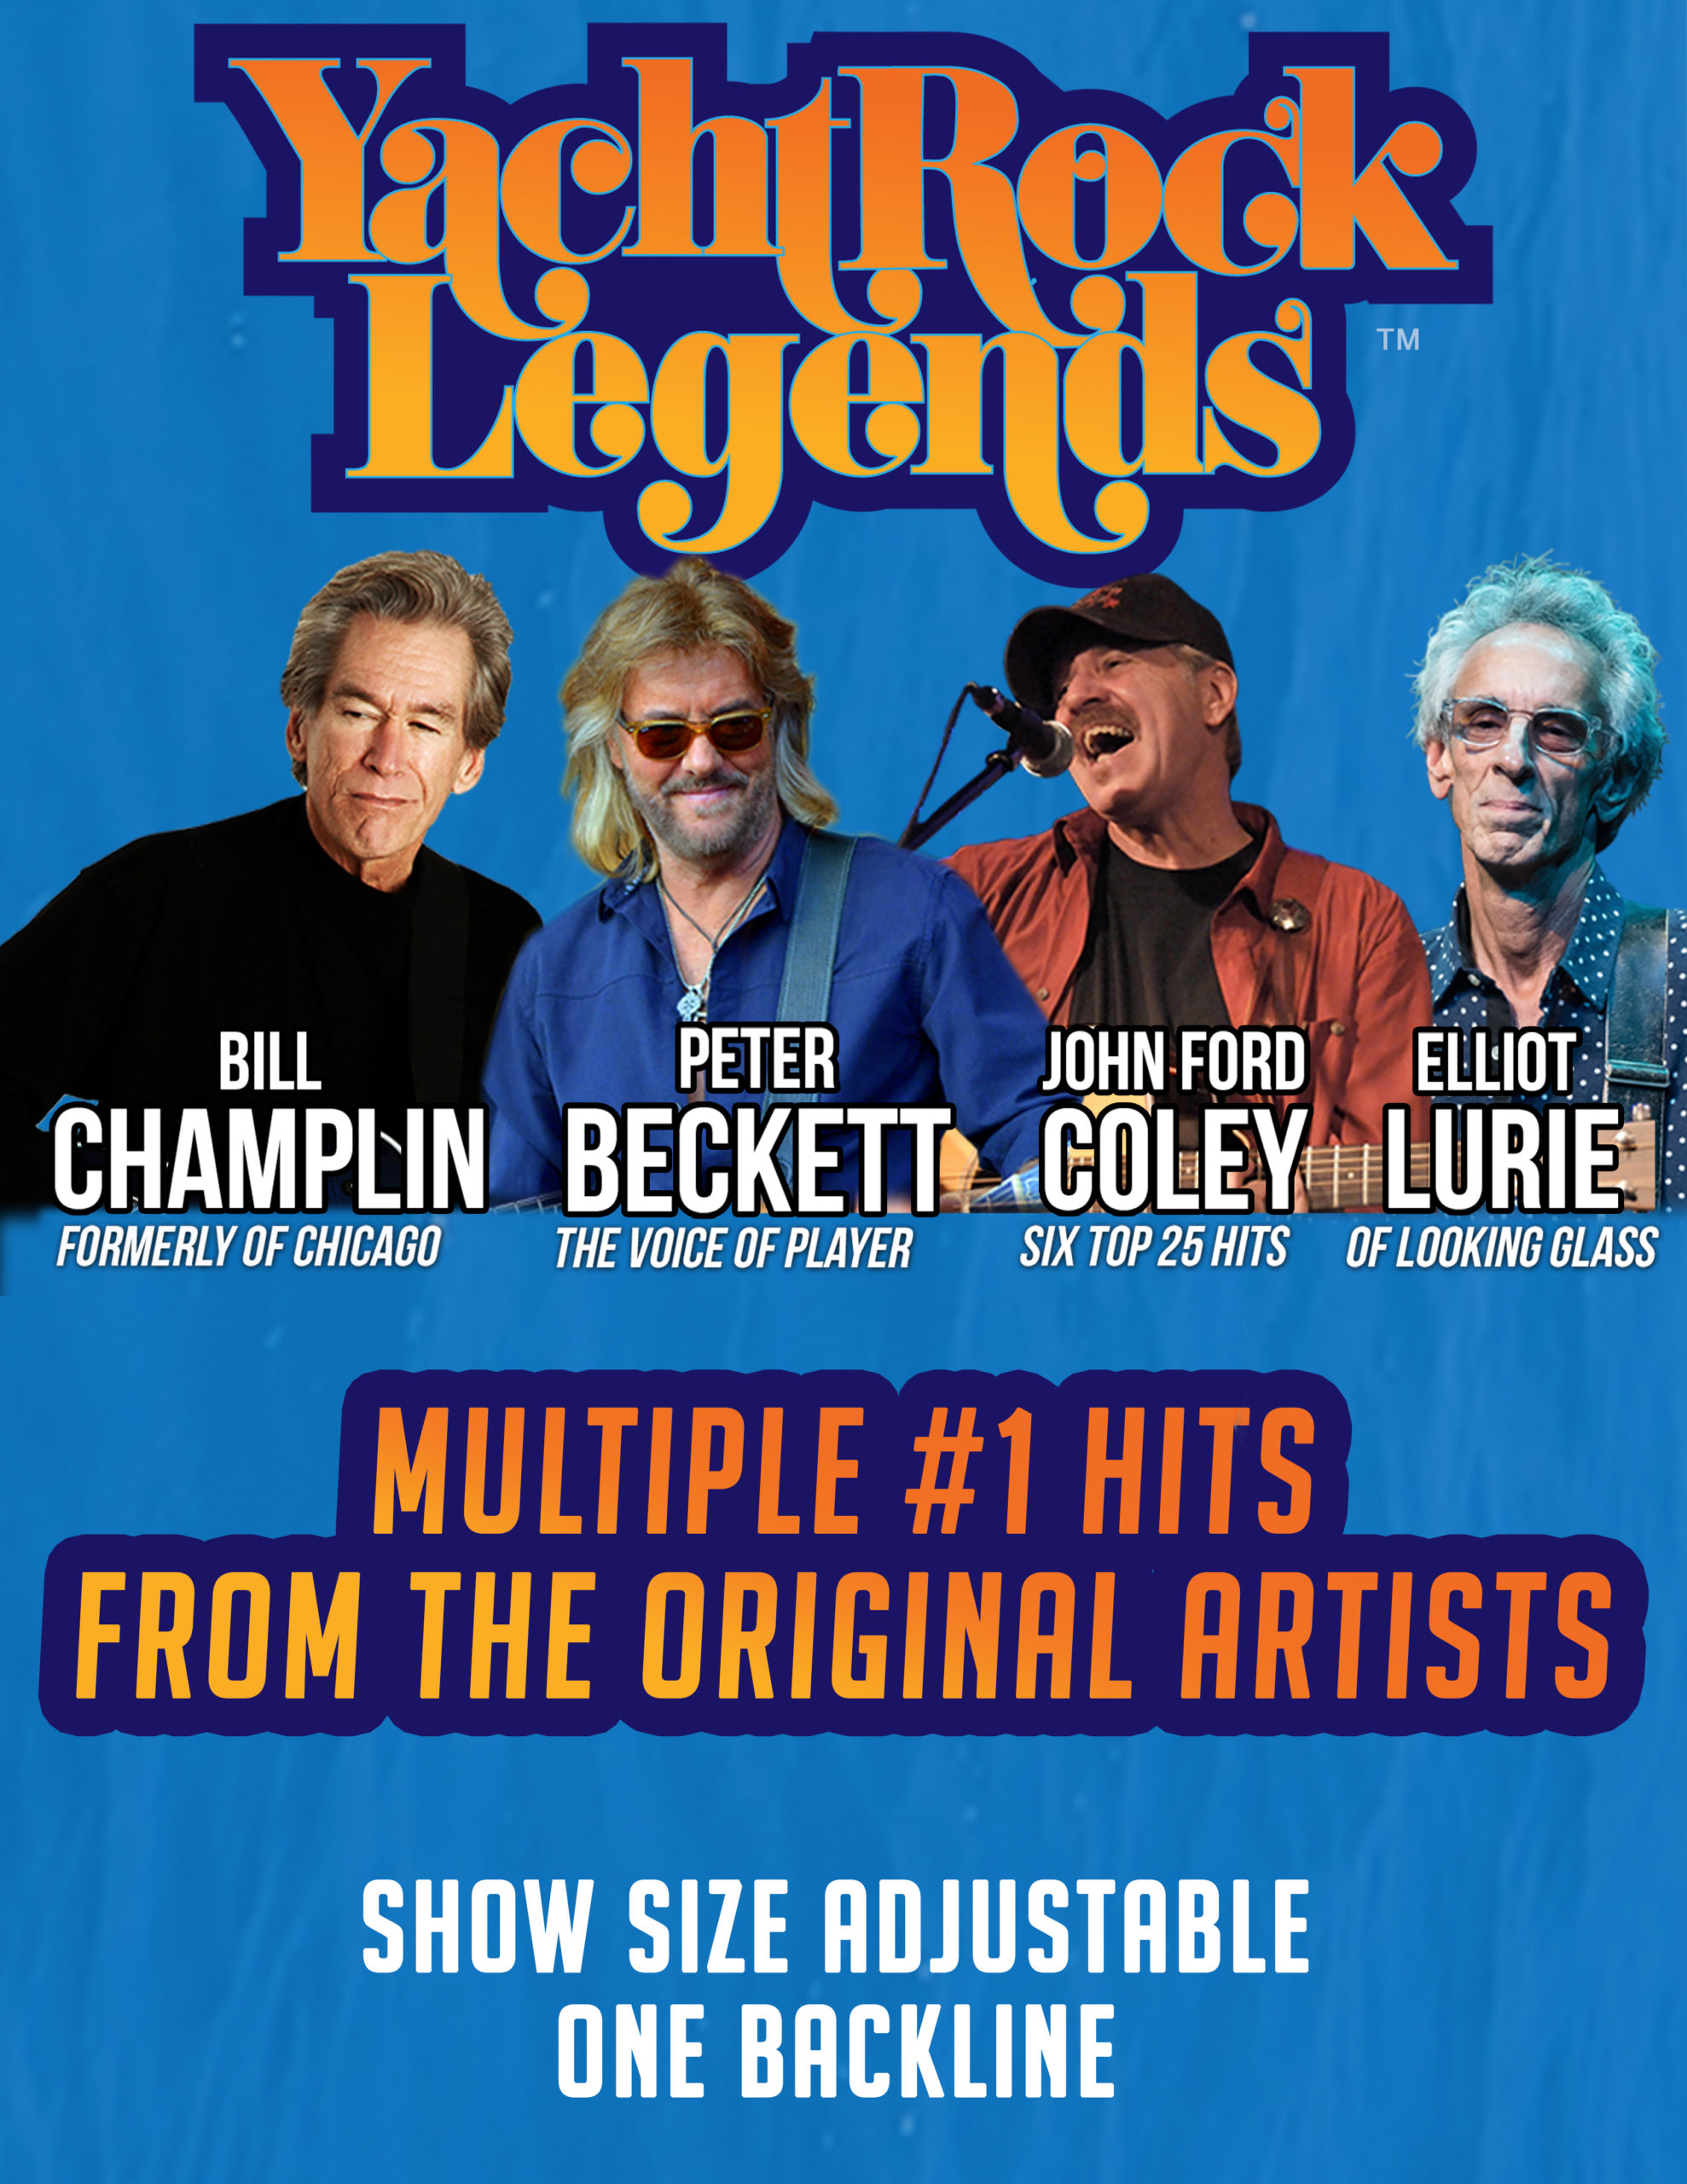 yacht-rock-legends-poster